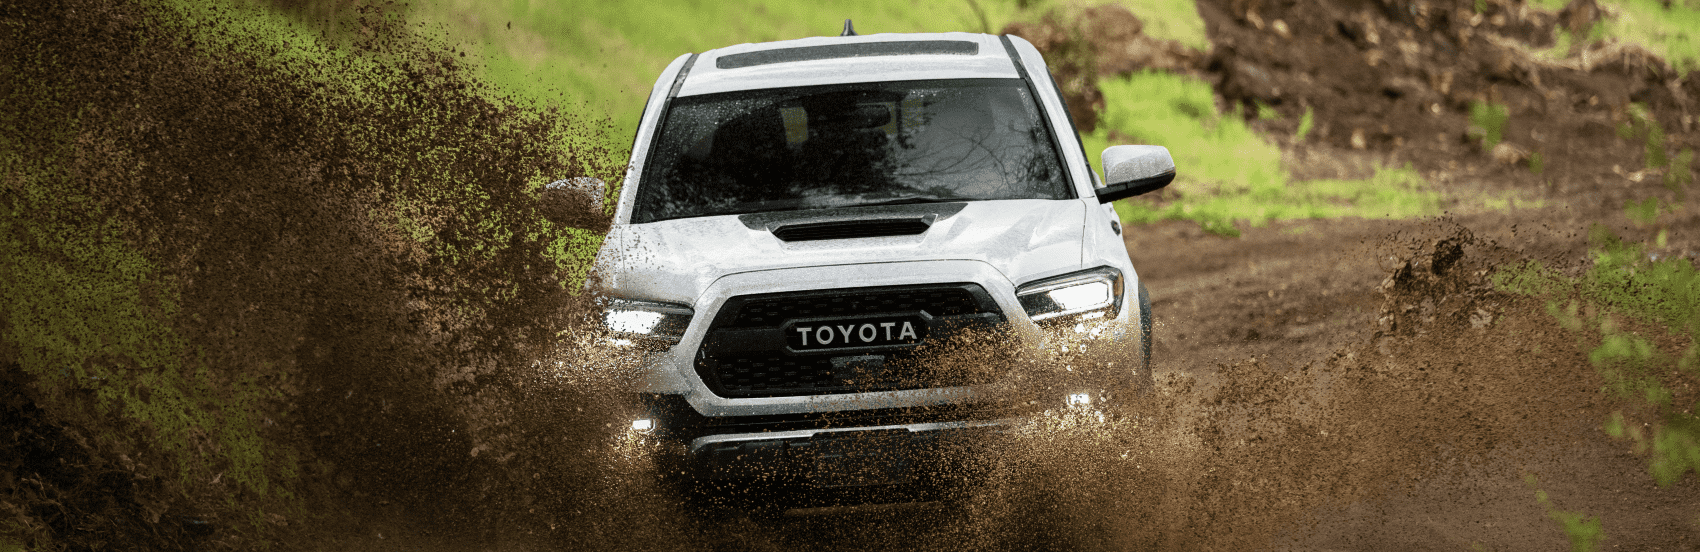 Test Drive The 2021 Toyota Tacoma Today!